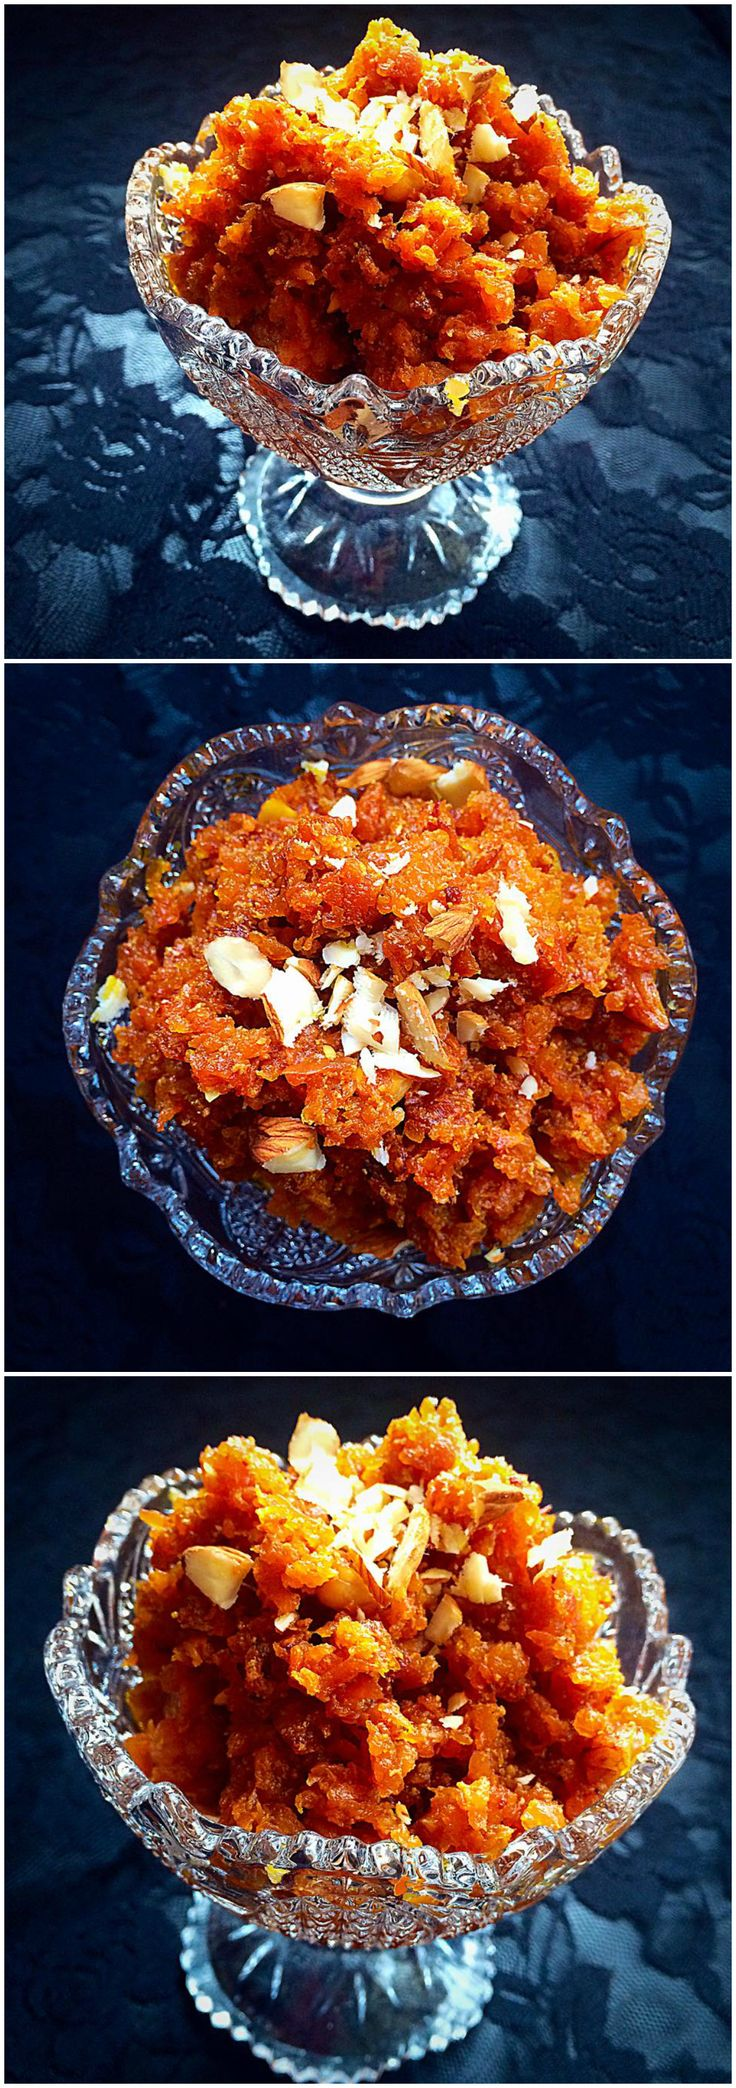 Gajar (Carrot) ka Halwa - A traditional Pakistani dessert recipe @ fatimacooks.net